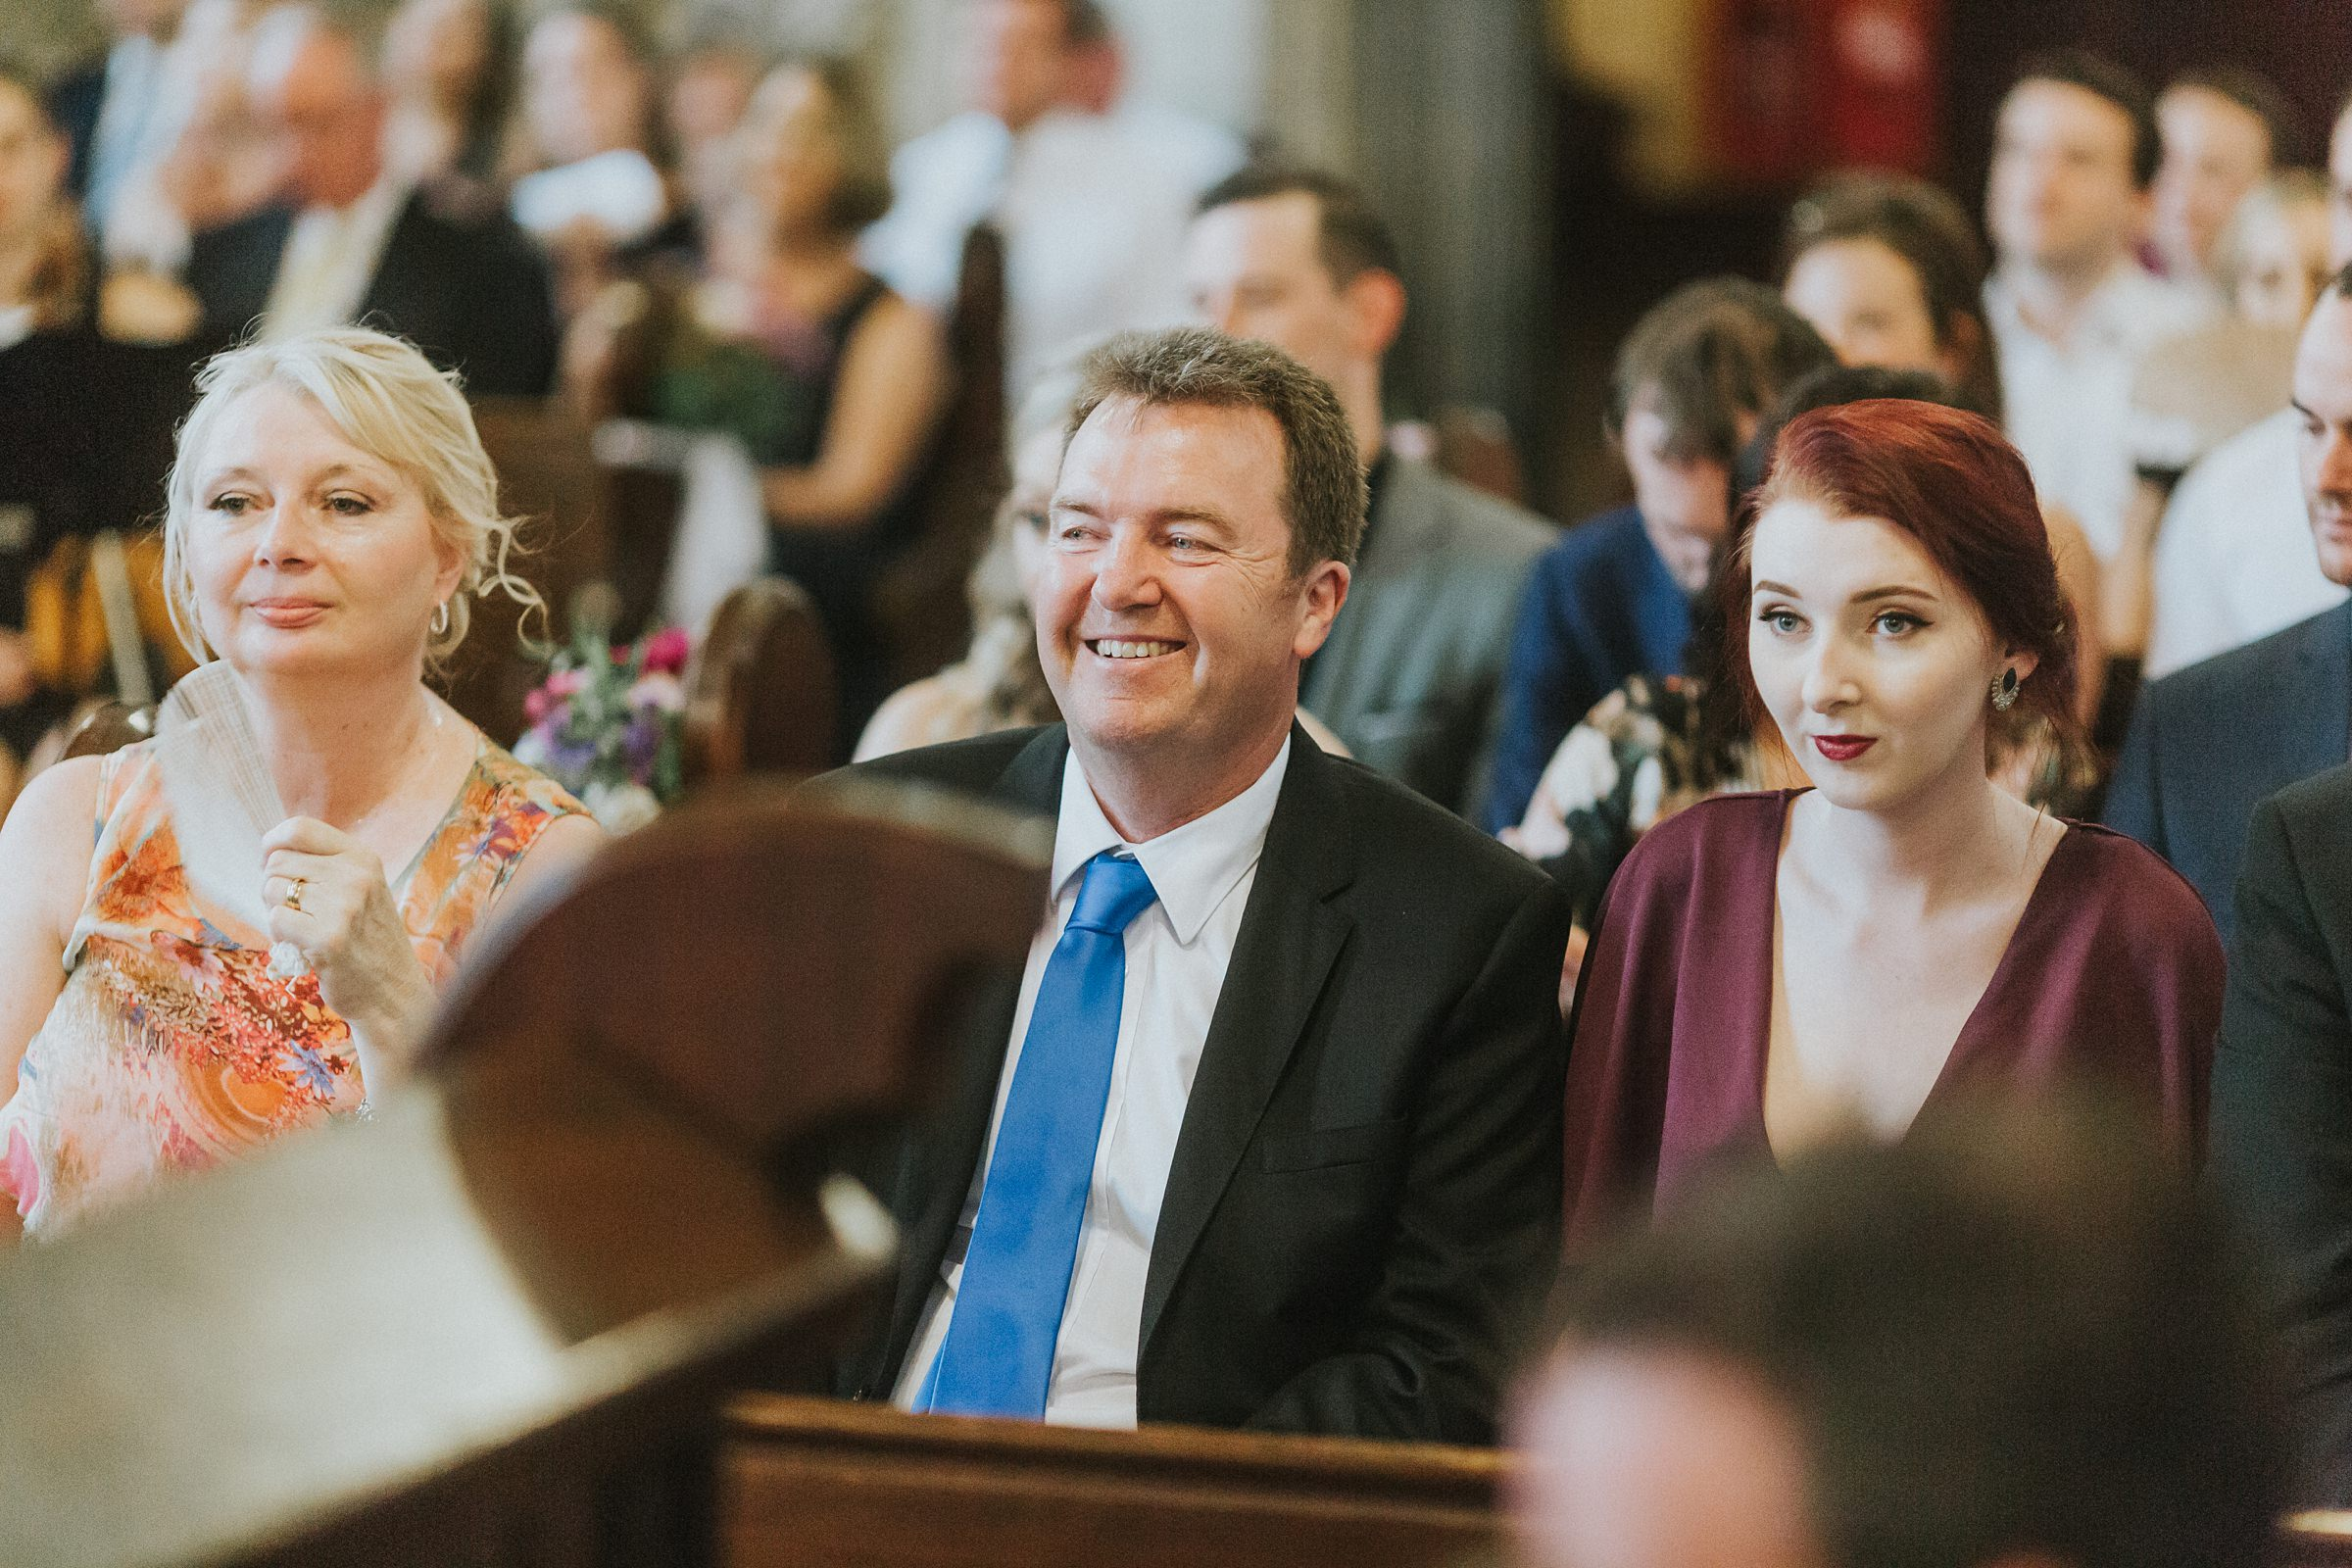 guests laughing during wedding ceremony at st john's college chapel